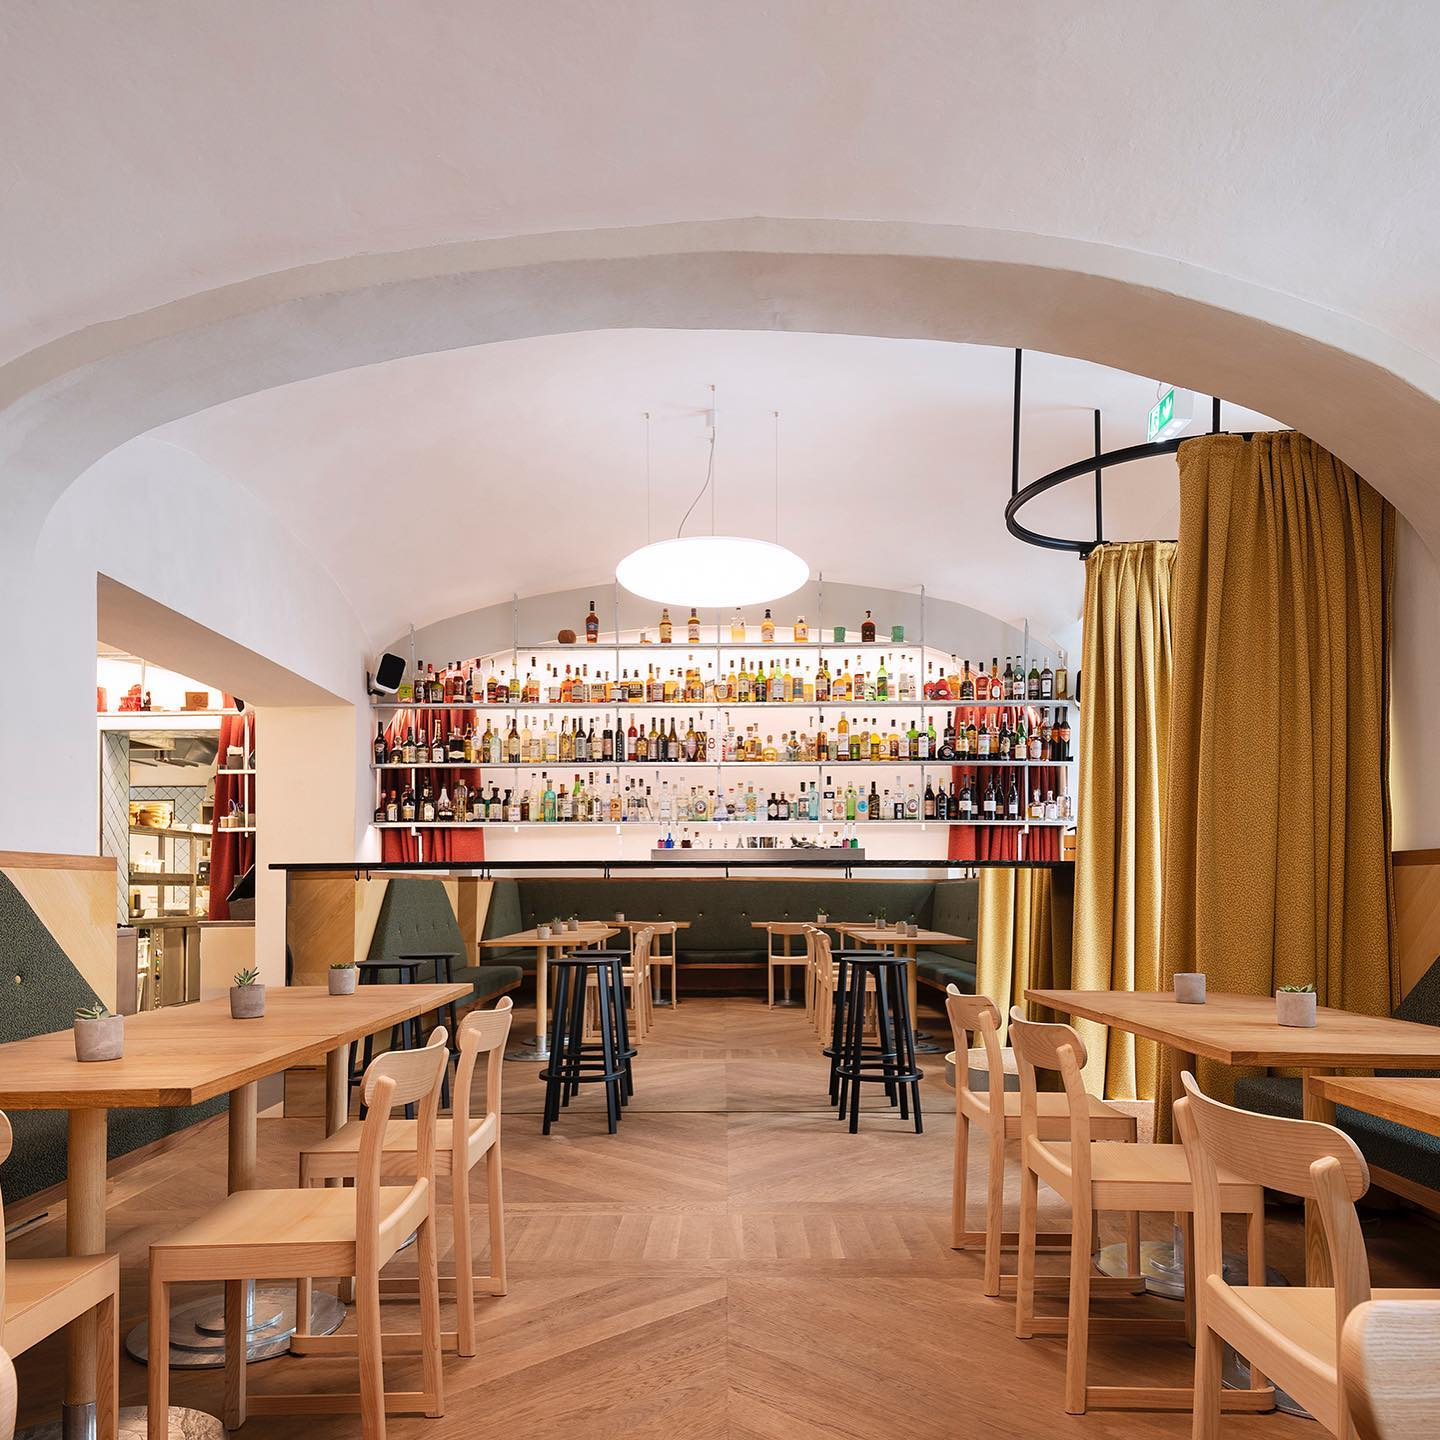 Lighting Design for Cafe Kandl, Vienna - completed in 2019 -  Architecture by IFUB & Photography by Sorin Morar #lighting_design #vienna #cafedesign #austrianarchitecture #coffeeculture